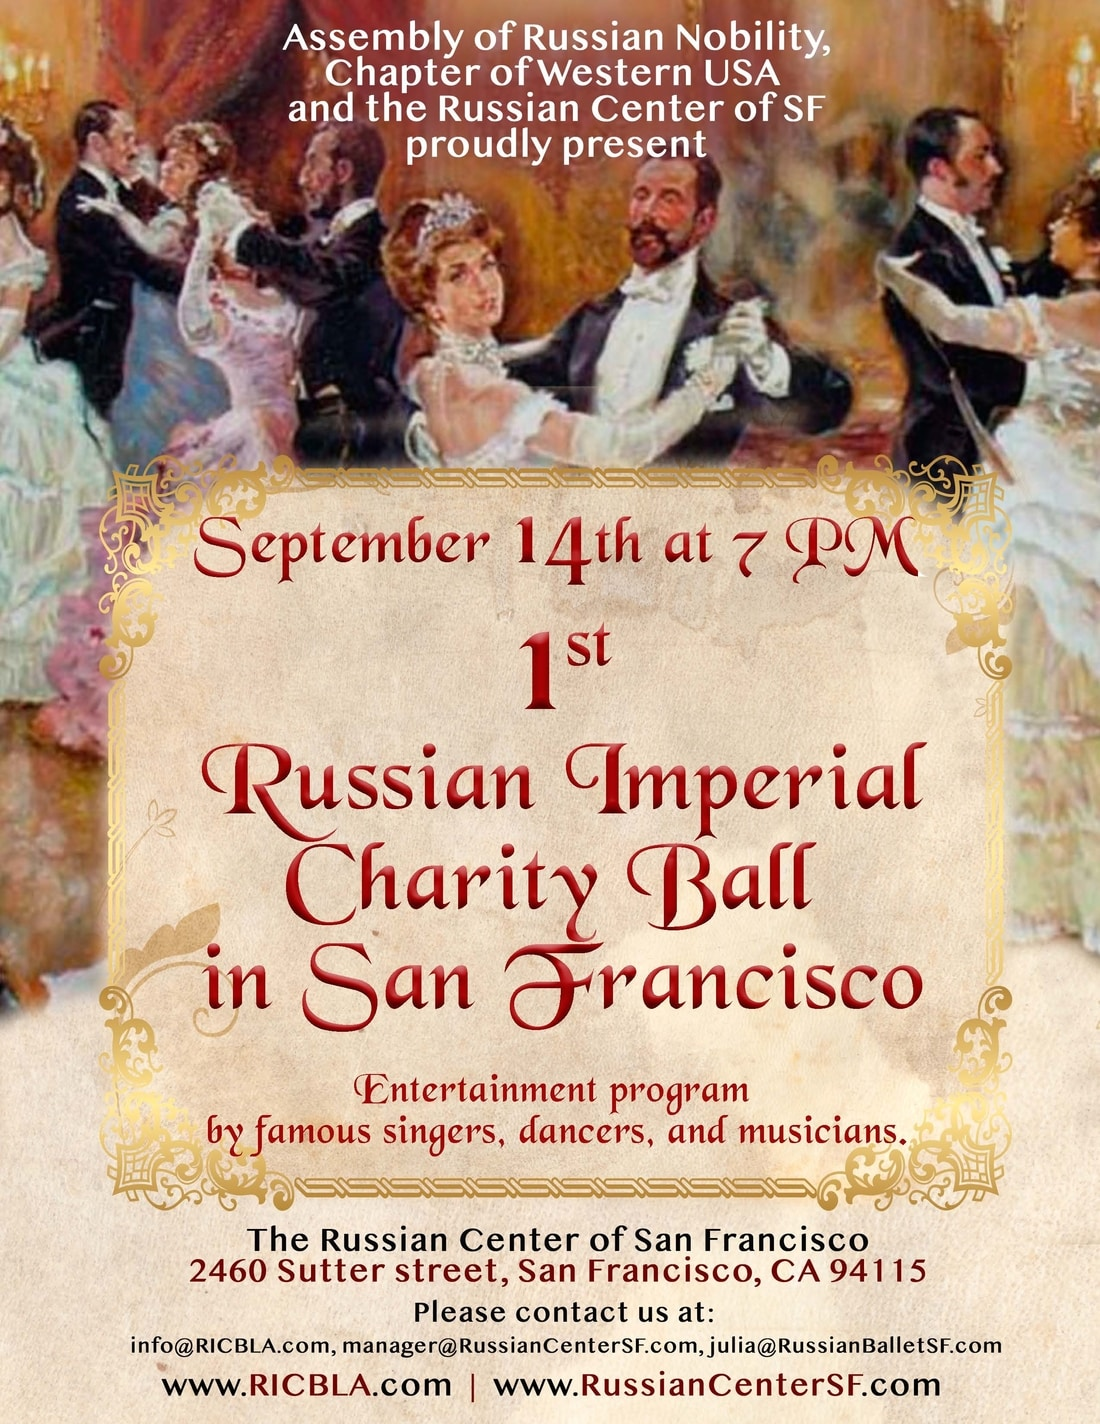 1st Russian Imperial Charity Ball in San Francisco